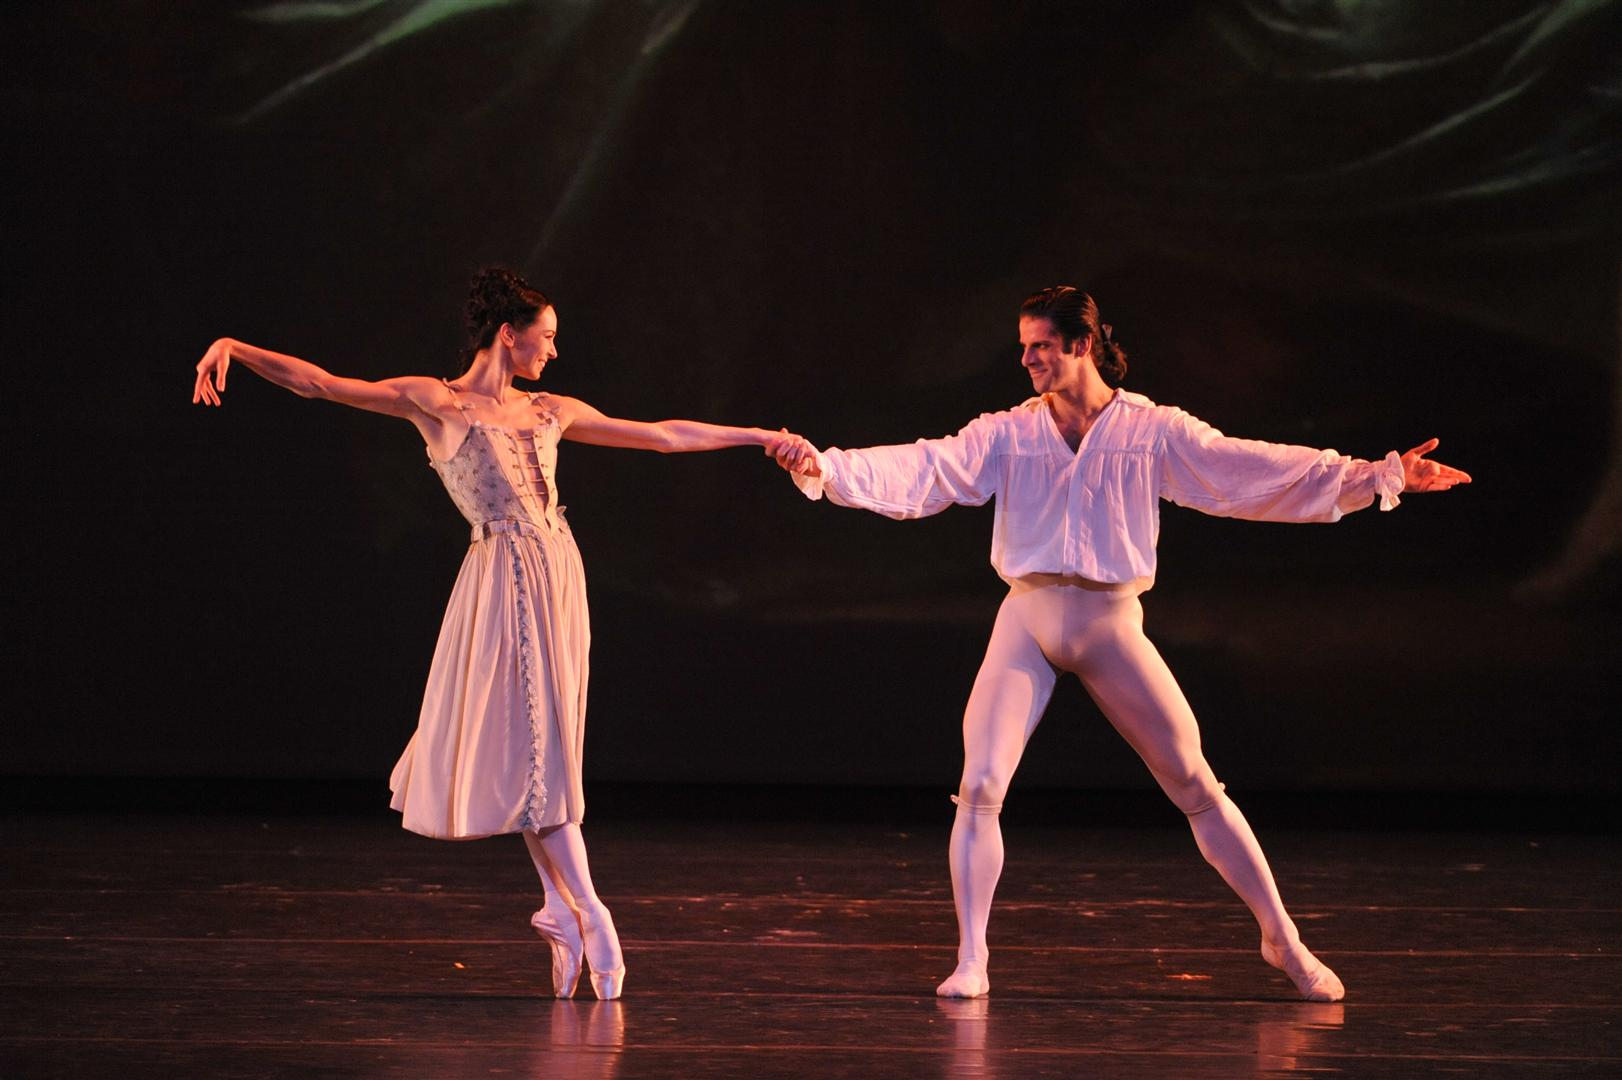 Marcelo-Gomes-and-Diana-Vishneva-perform-a-tribute-to-Natalia-Makarova-gala-2012-Photo_-Gene-Schiavone